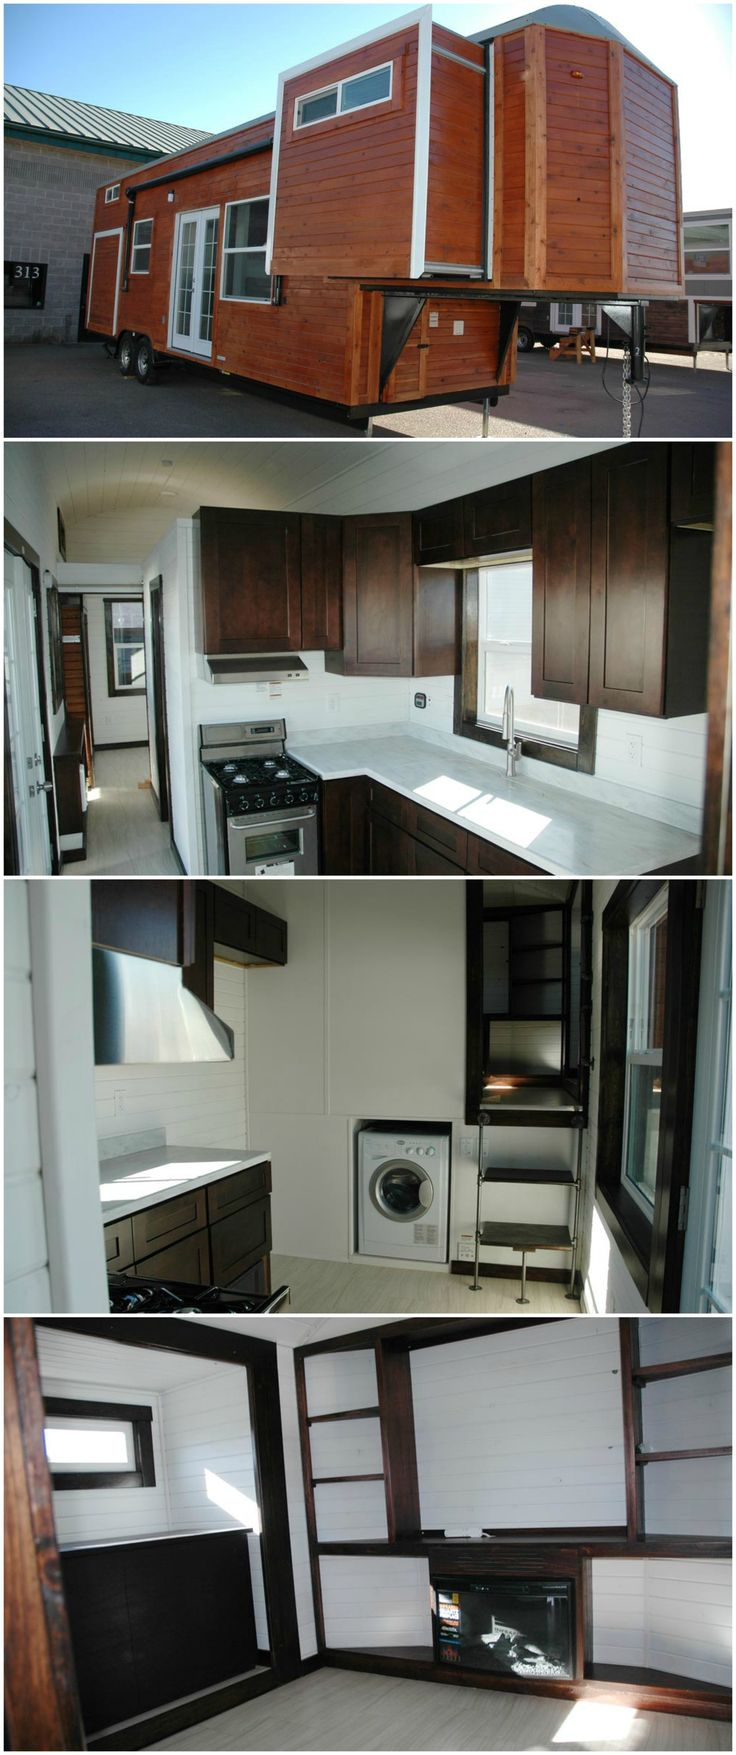 The Carpathian is a lovely tiny house built by Tiny Idahomes.  This model includes three slide outs — two in the living room over the gooseneck and one in the rear bedroom. It has a front living room/bedroom with a Murphy bed in one of the slide outs, a full size bathroom, and bedroom in the rear.  The kitchen uses mahogany cabinets, Corian countertops, and a 20″ stainless steel range. The double basin kitchen sink comes with a Corian cover so it can be used as countertop space while not in…